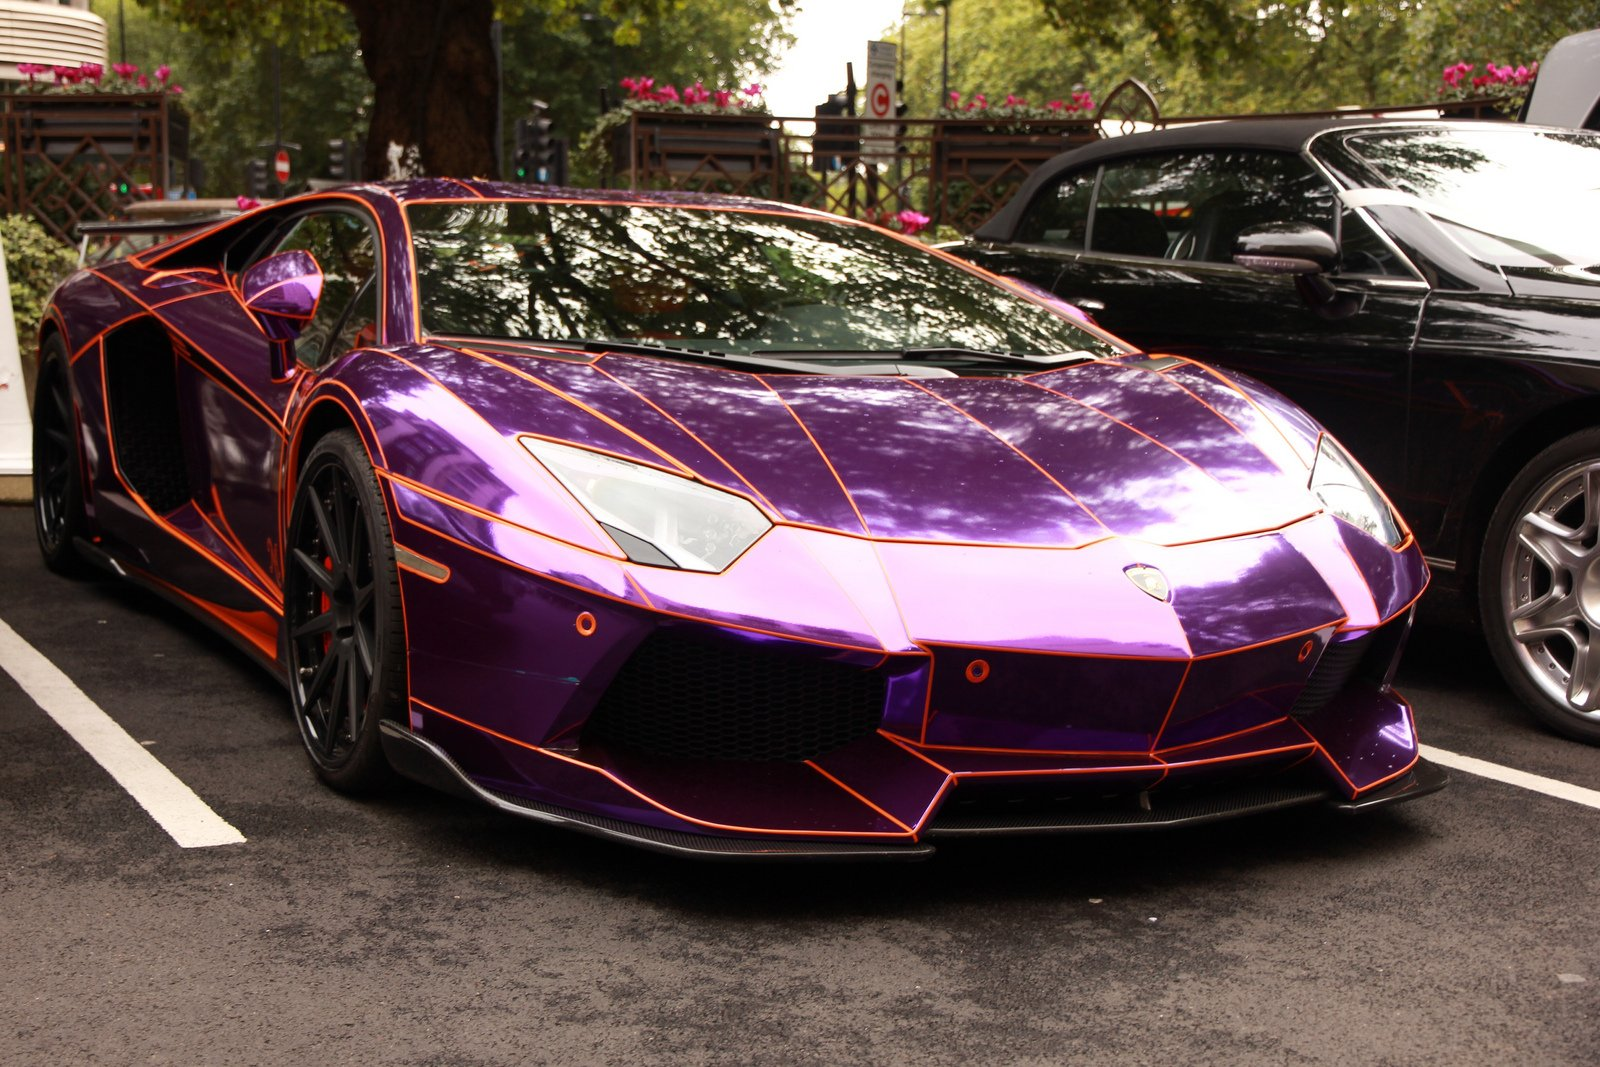 aventador purple chrome lamborghini lp700 supercars tuning wrapping wallpaper 1600x1067 393723 wallpaperup